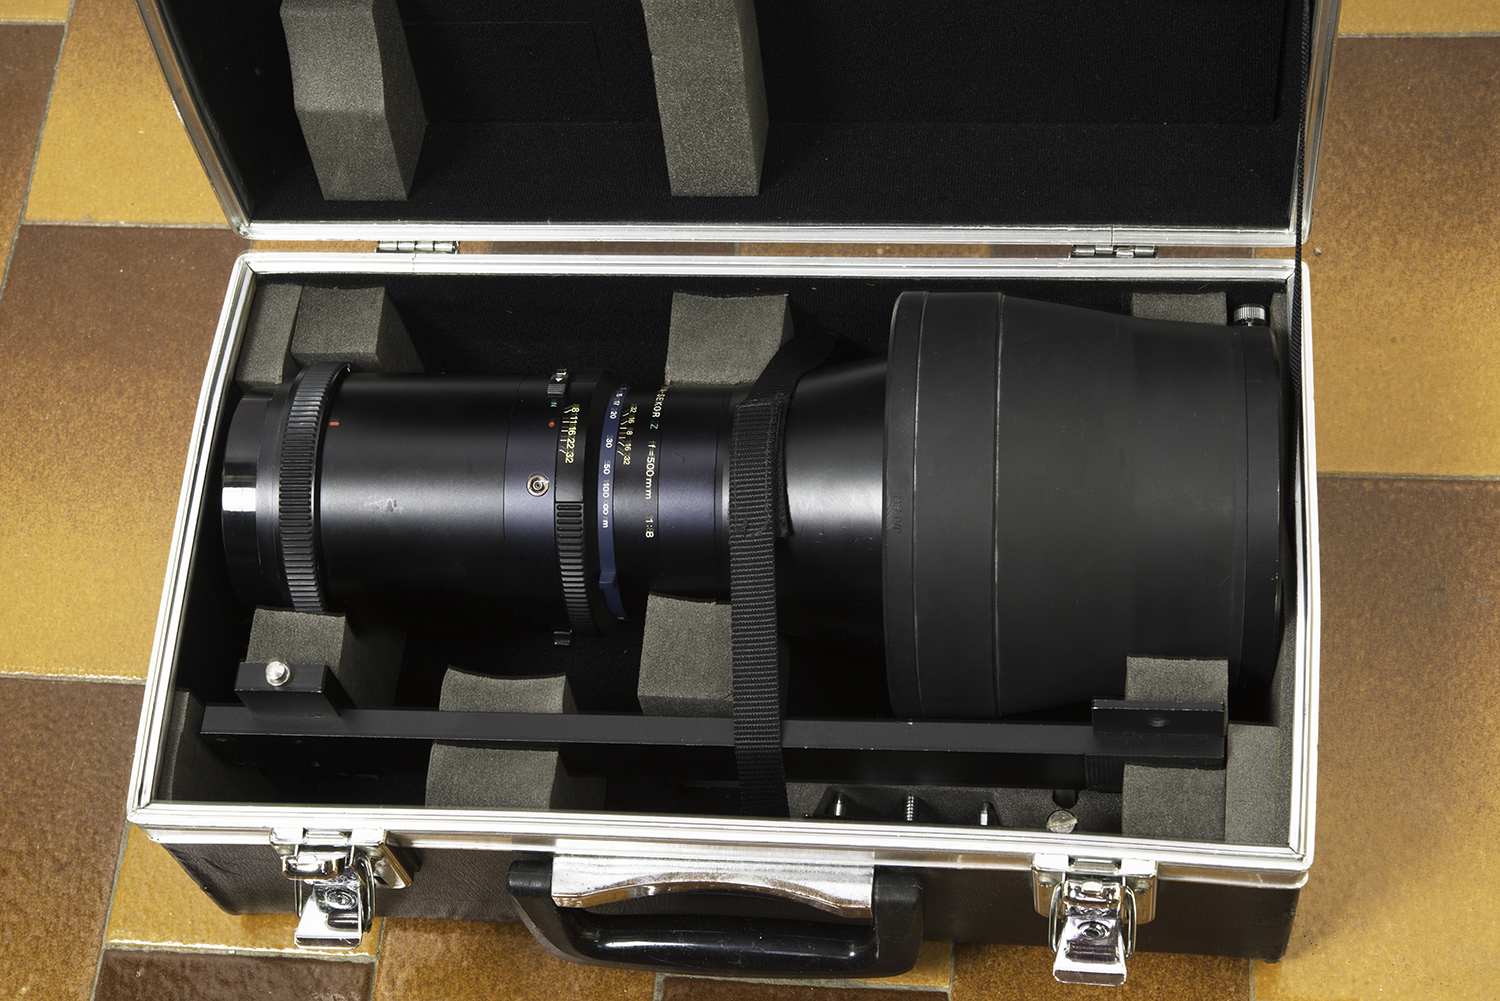 Mamiya Z 500mm lens and support bracket in case